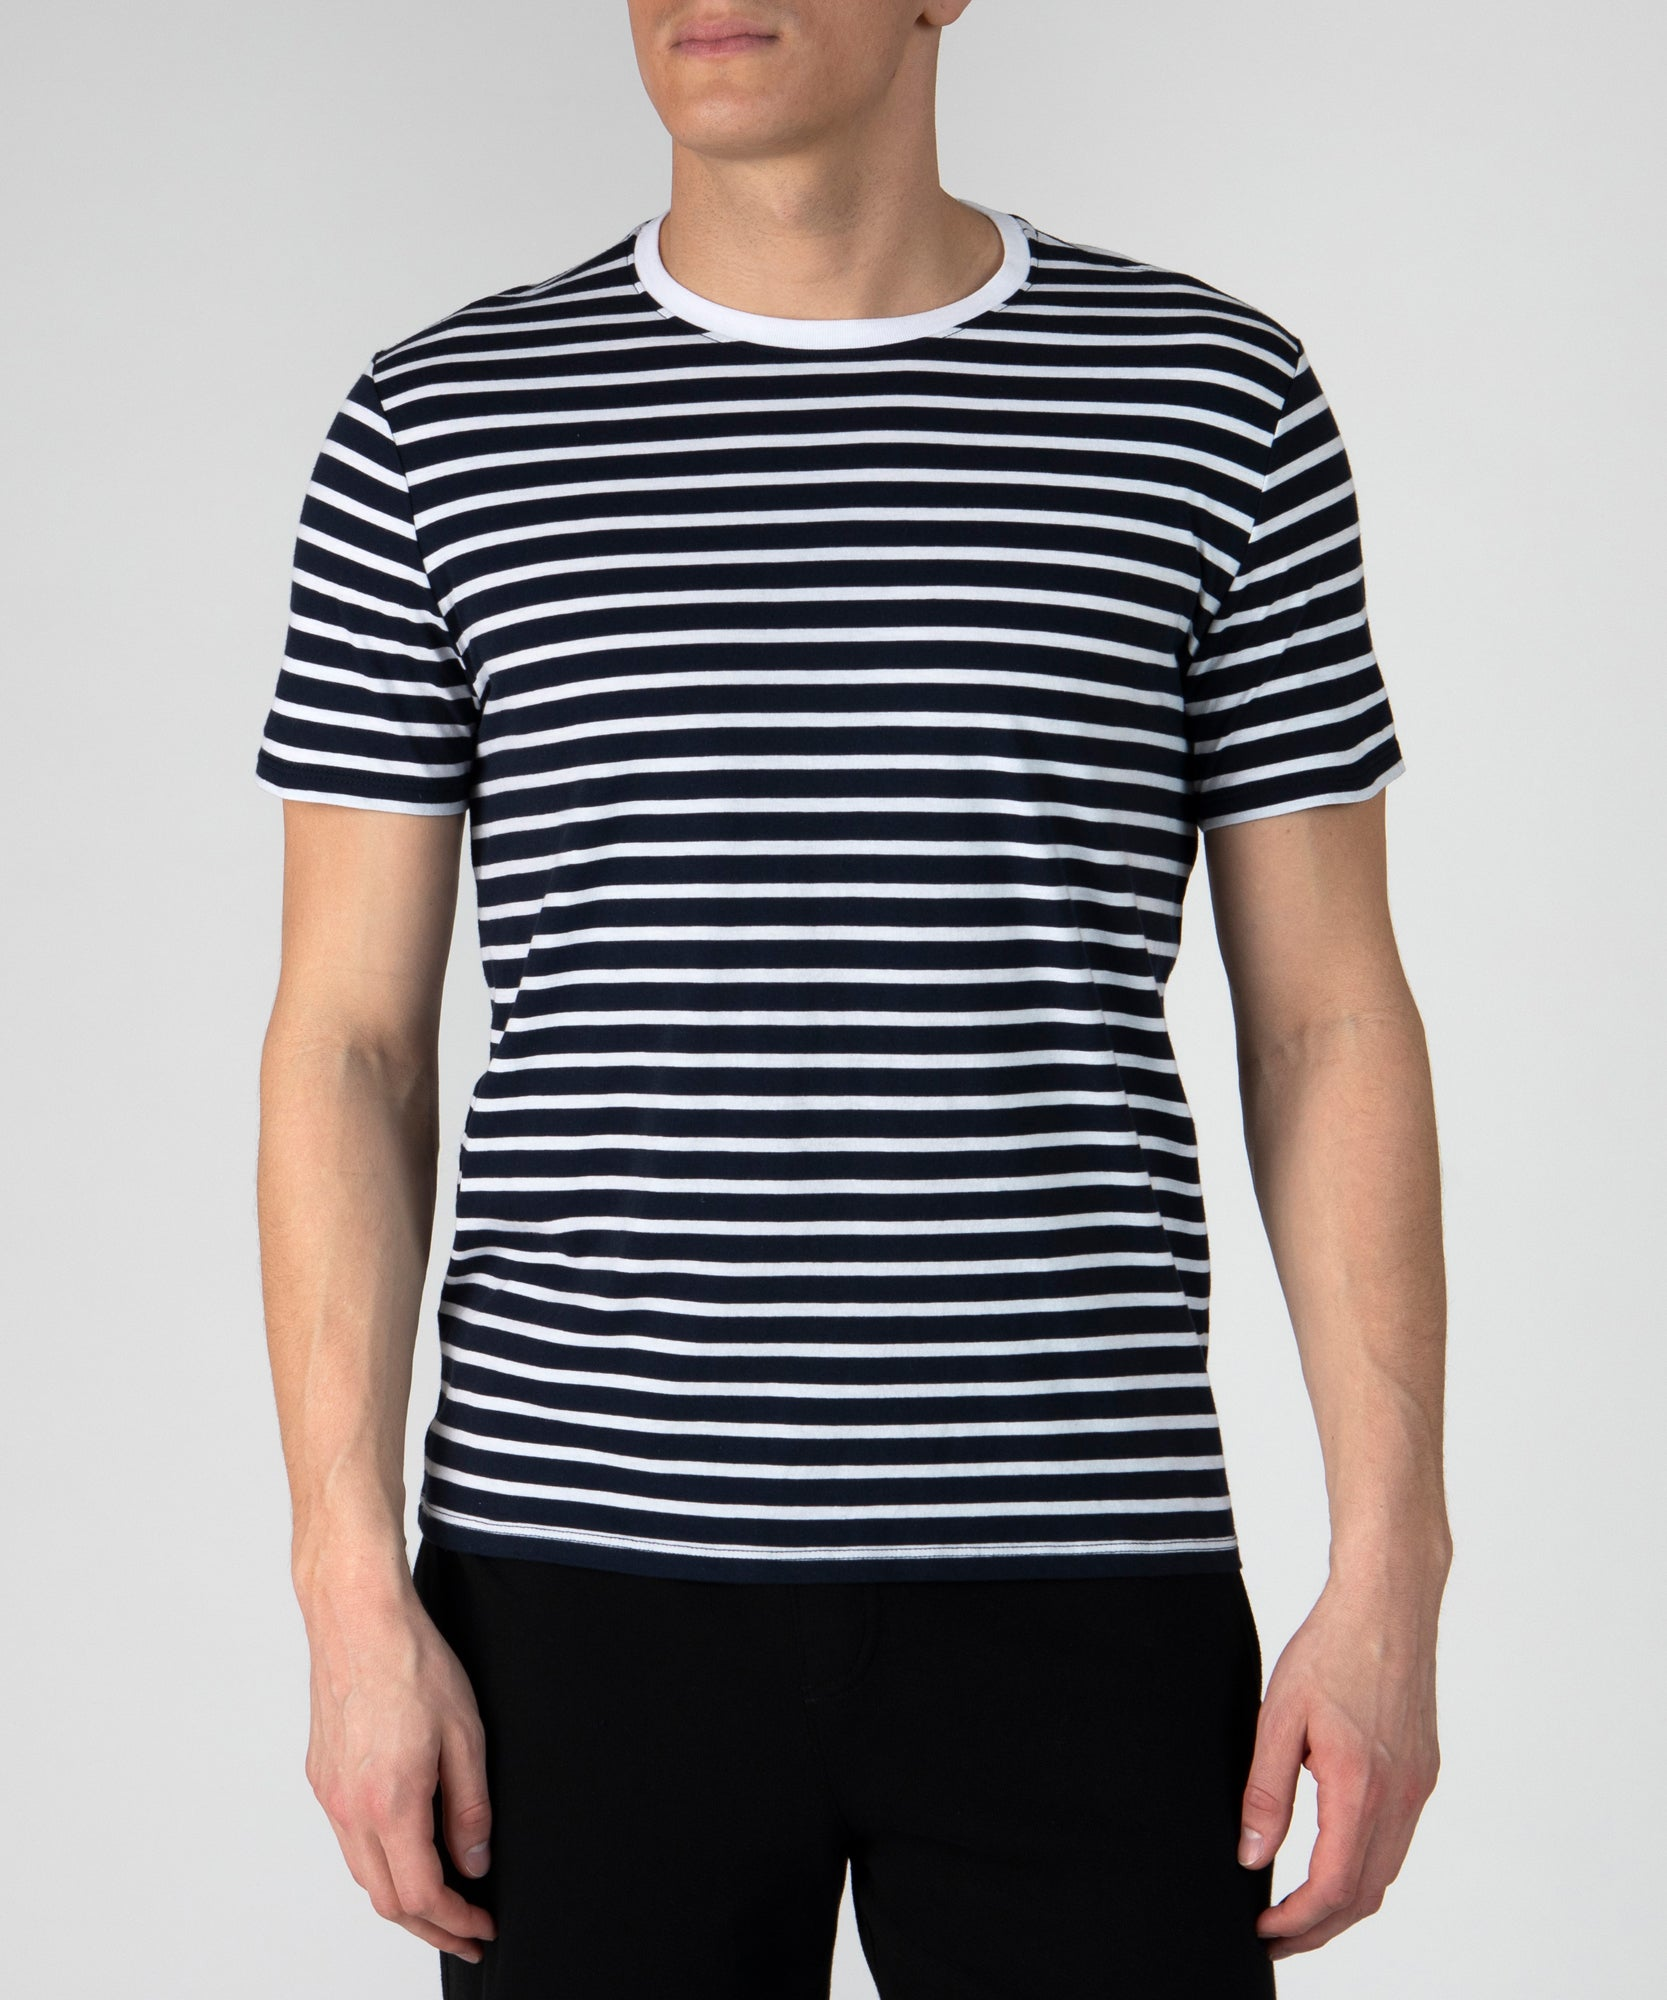 Navy and White Stripe Classic Jersey Crew Neck Tee - Men's Cotton Short Sleeve Tee by ATM Anthony Thomas Melillo